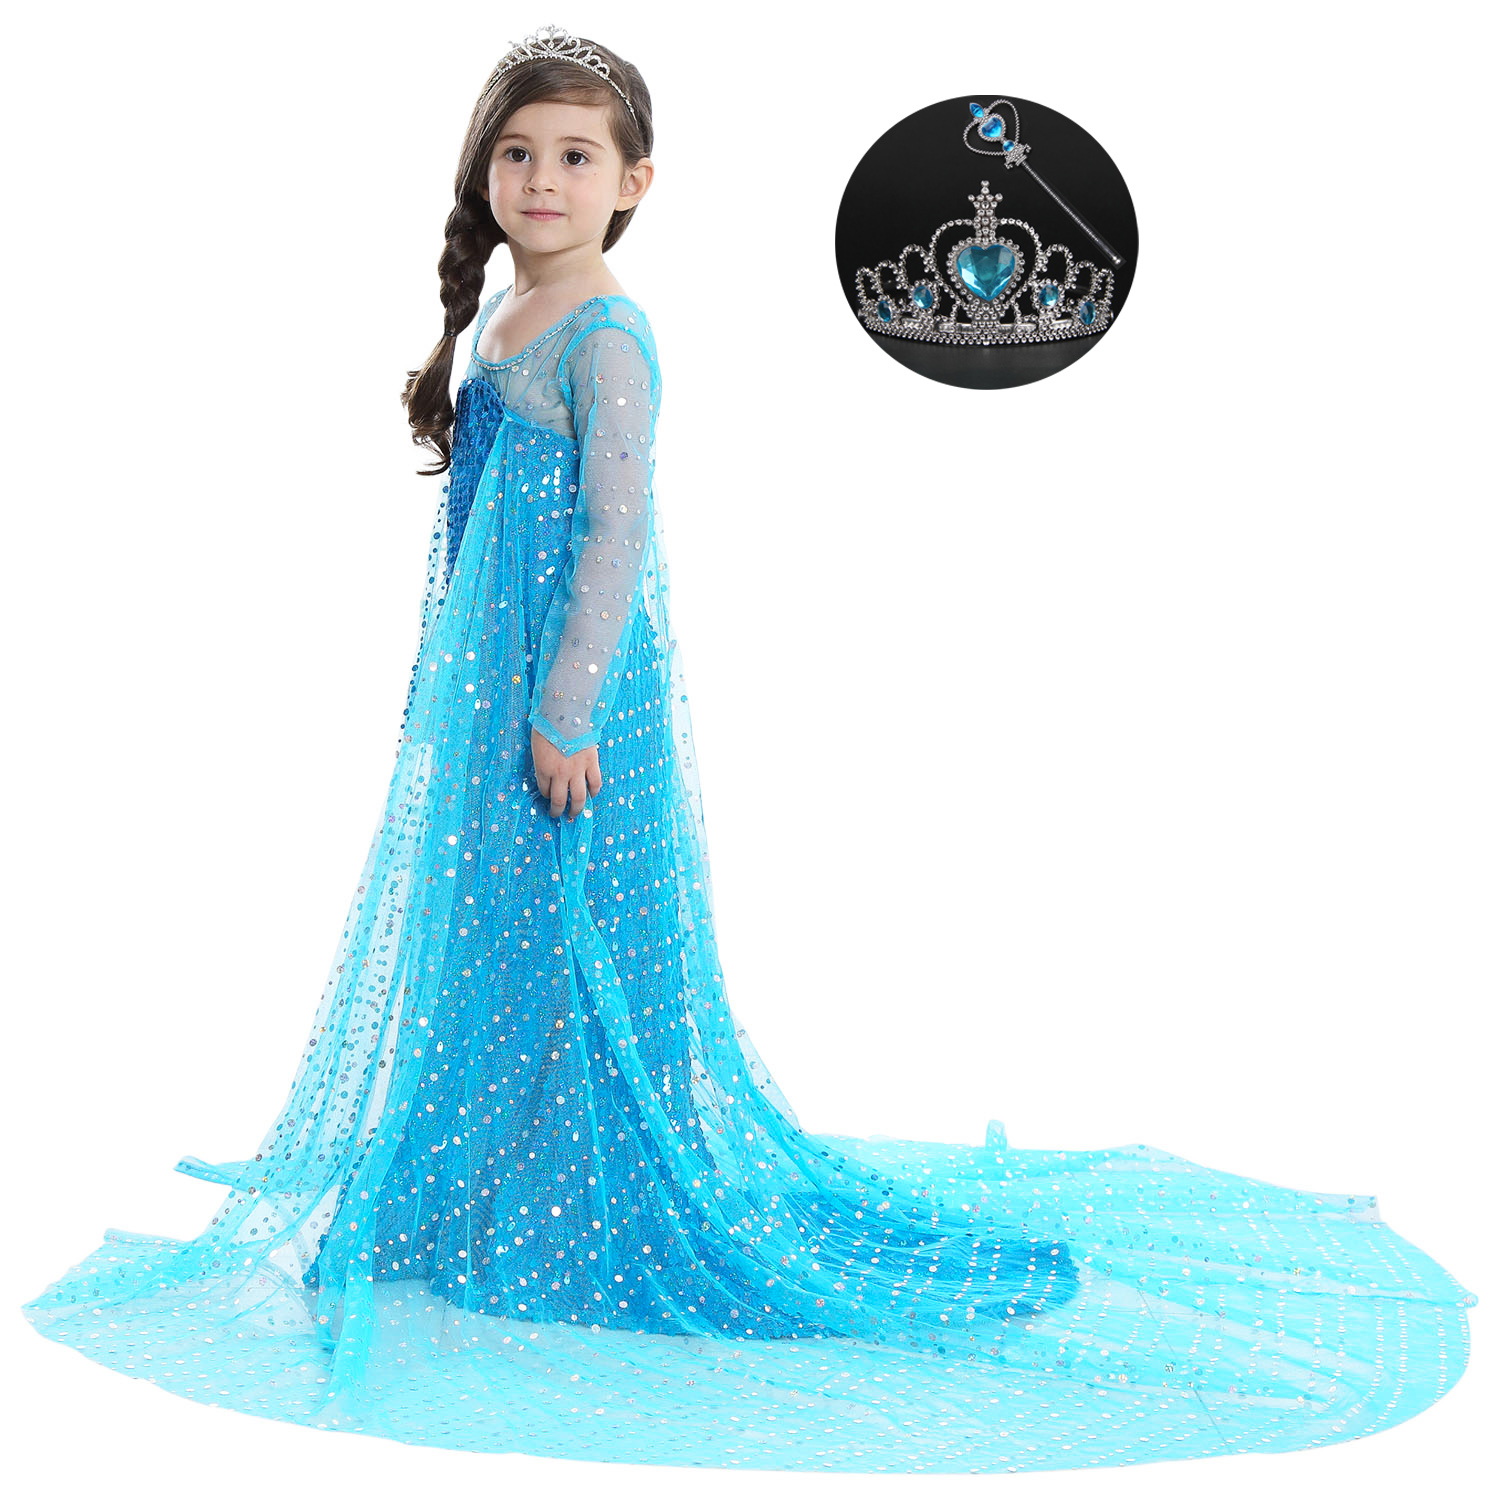 Baby Birthday Costume Carnival Kids Halloween Fancy Dress 4 5 6 7 8 9 10 11 12 Year Girls Cartoon Characters for Kids Parties swarovski octea nova 5295326